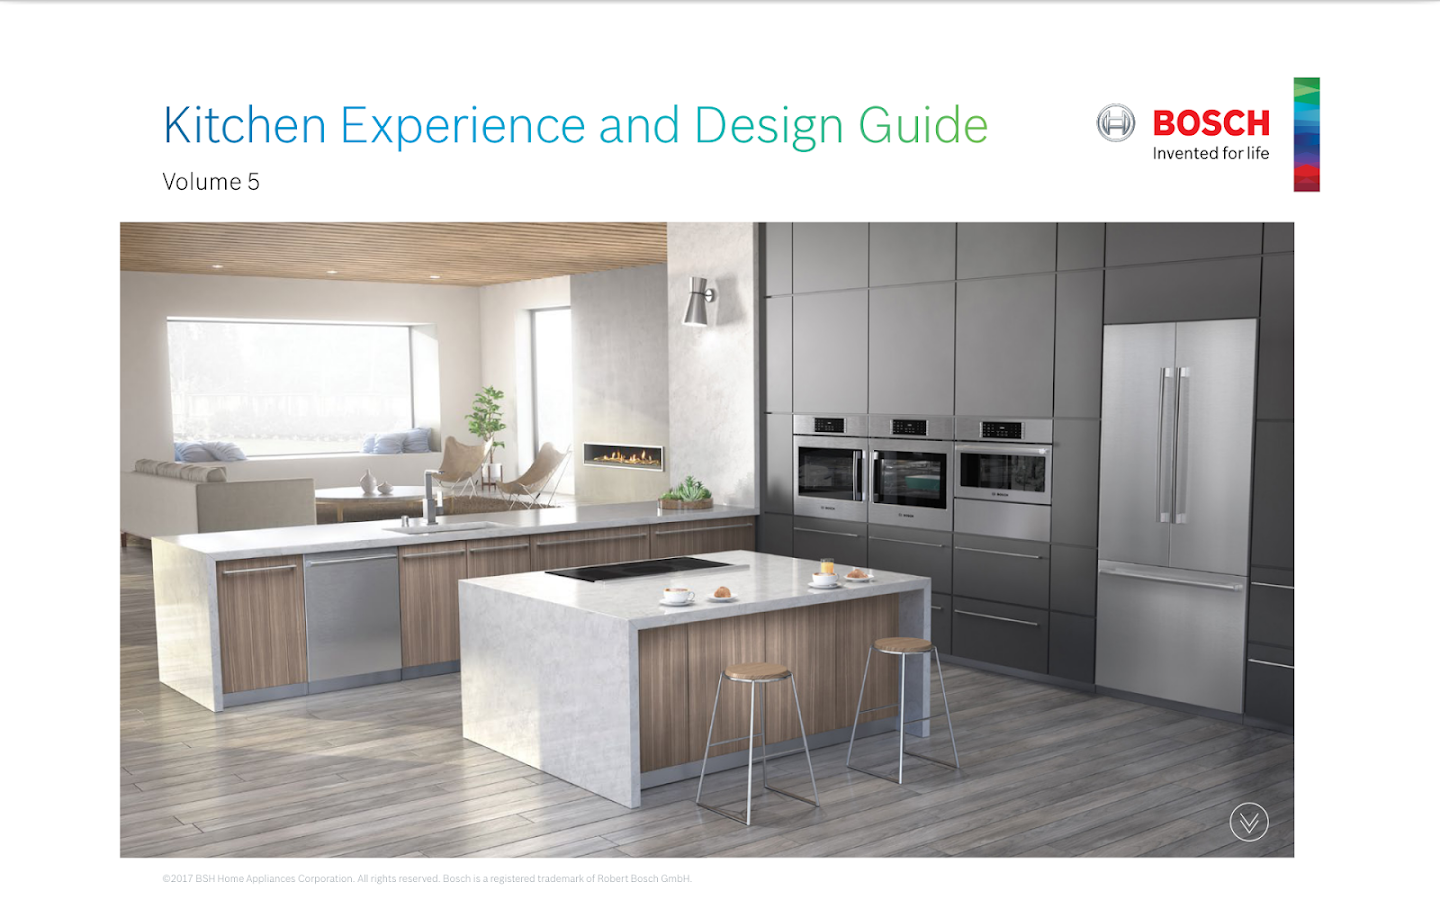 Bosch kitchen design guide android apps on google play for Kitchen design guide